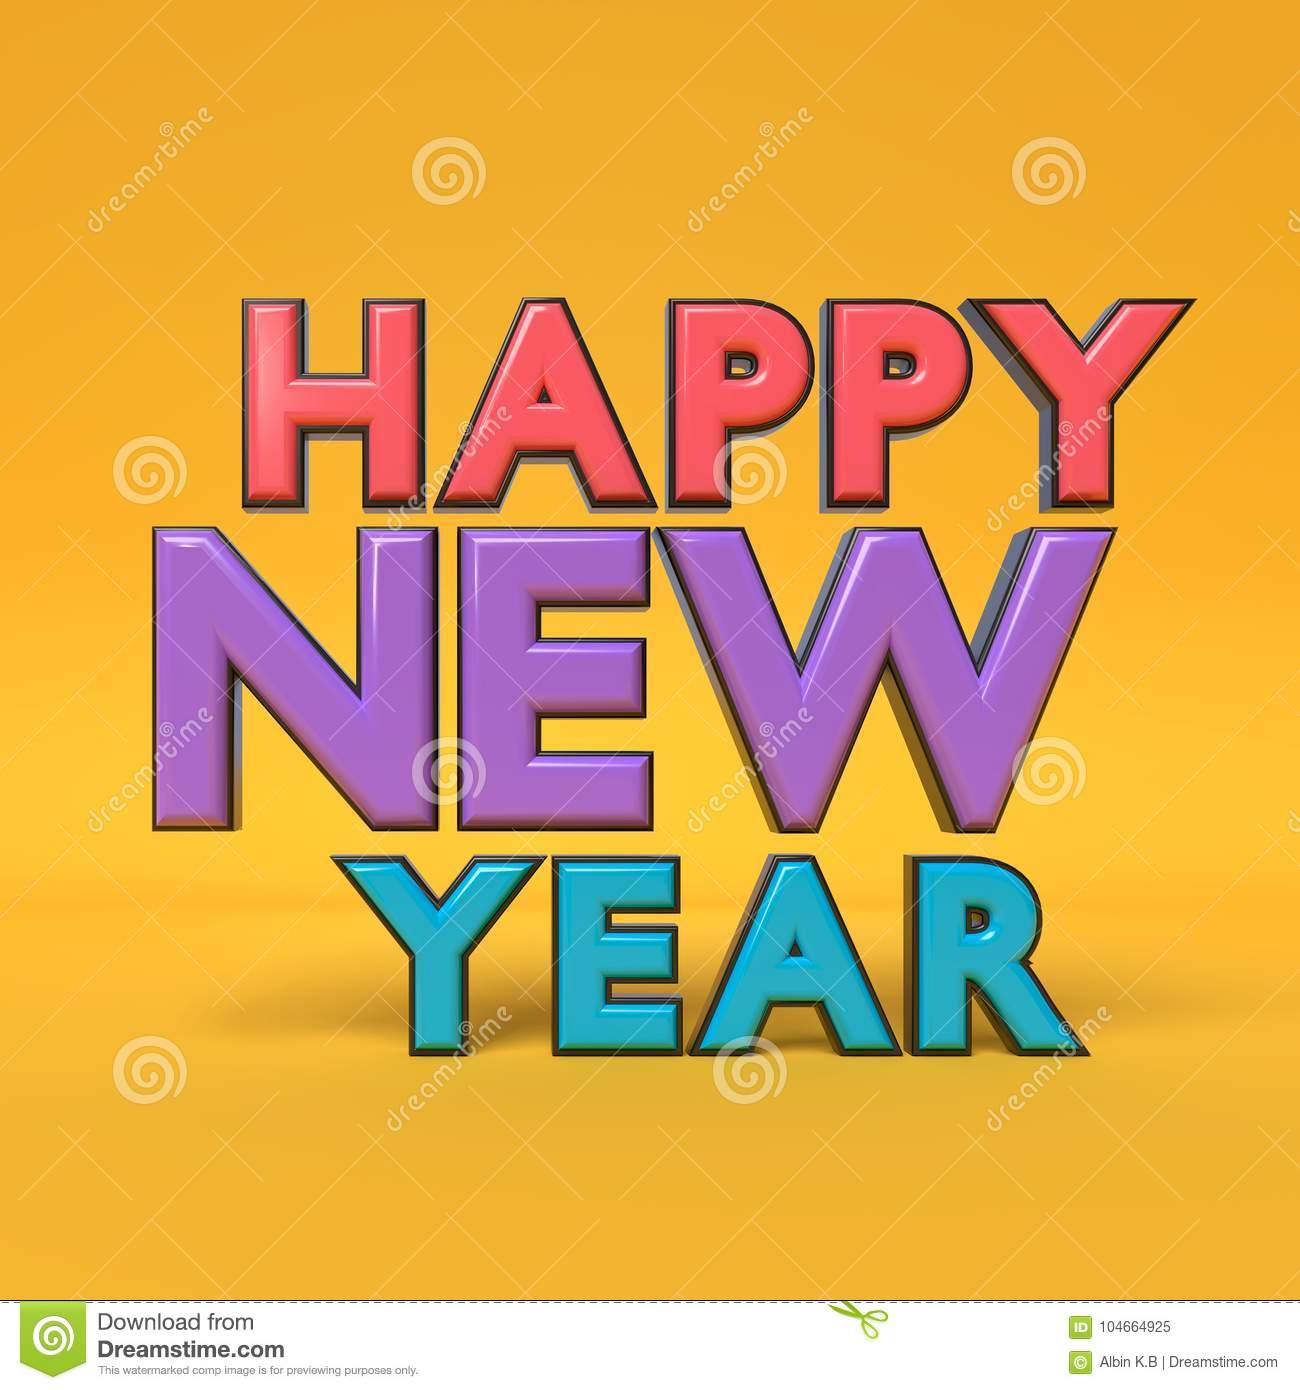 Happy New Year Text Greetings 3d Rendering Stock Illustration